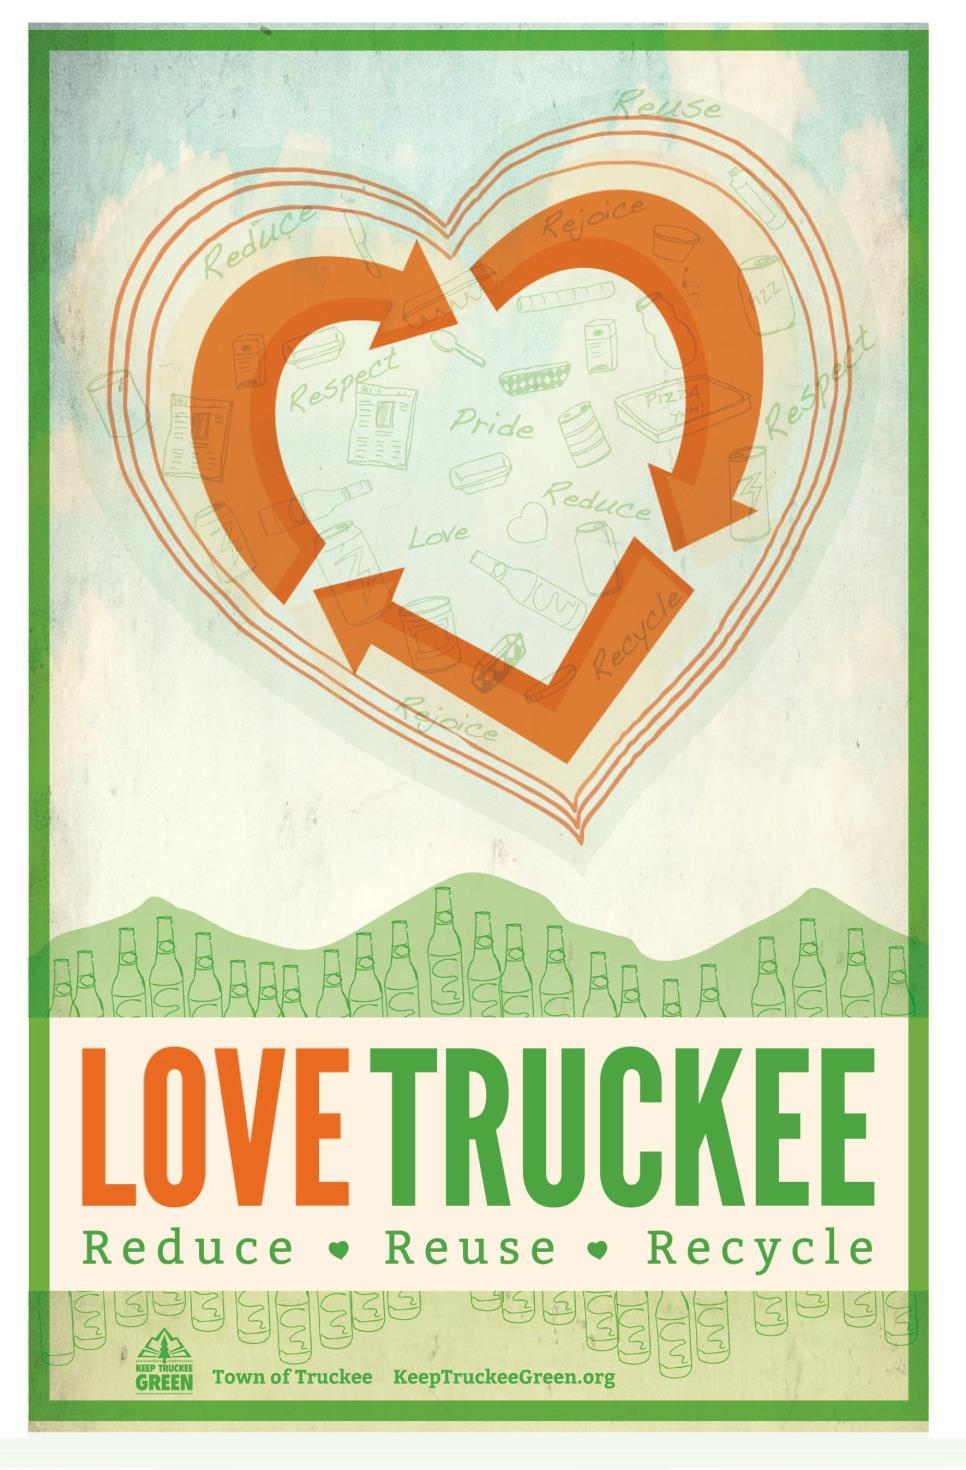 LoveTruckee_Rev-8-13-12-page-005